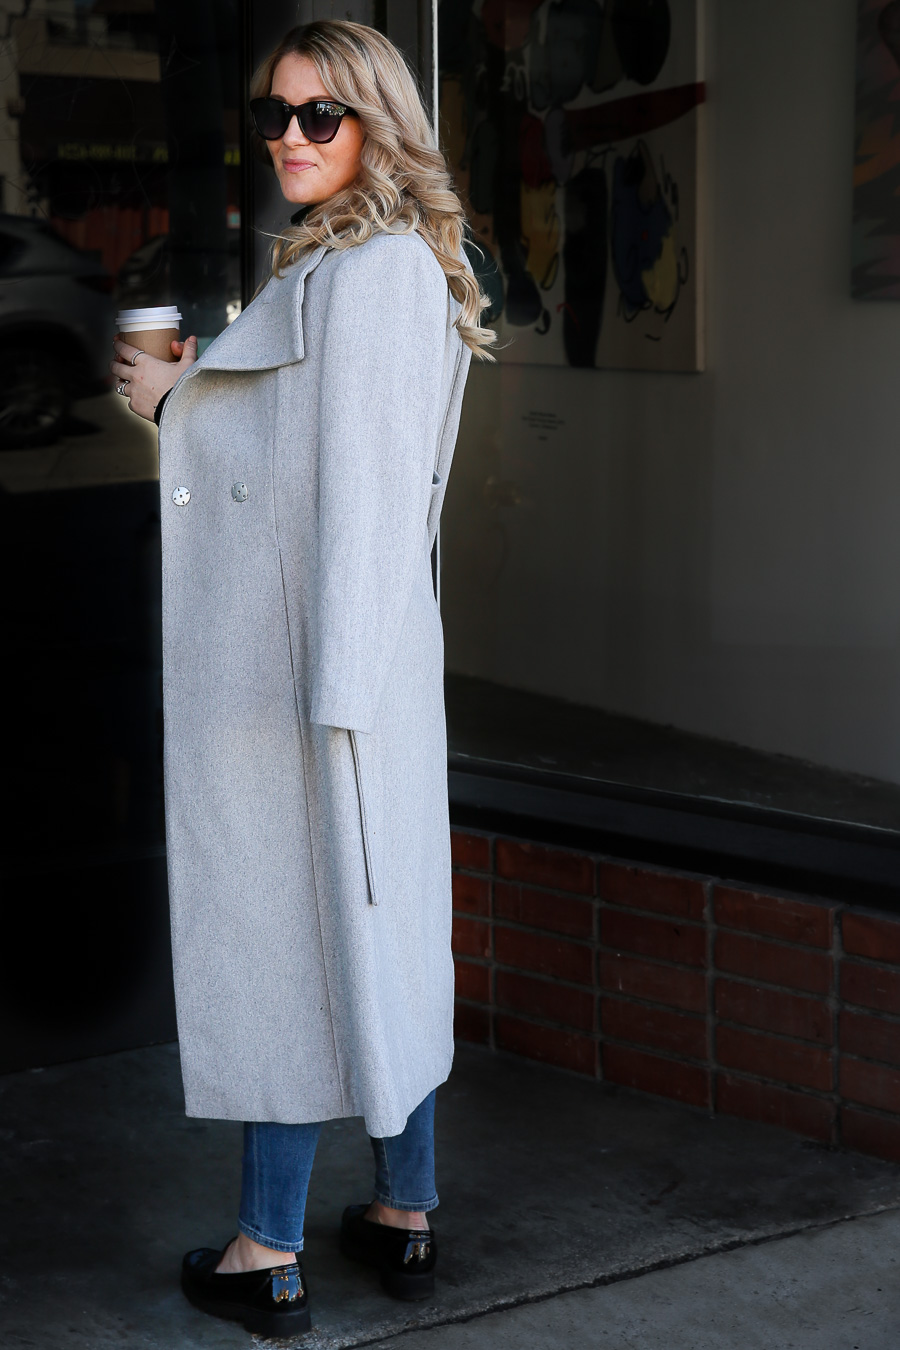 Clothes to Buy on Amazon - Grey Wool Coat Outfit